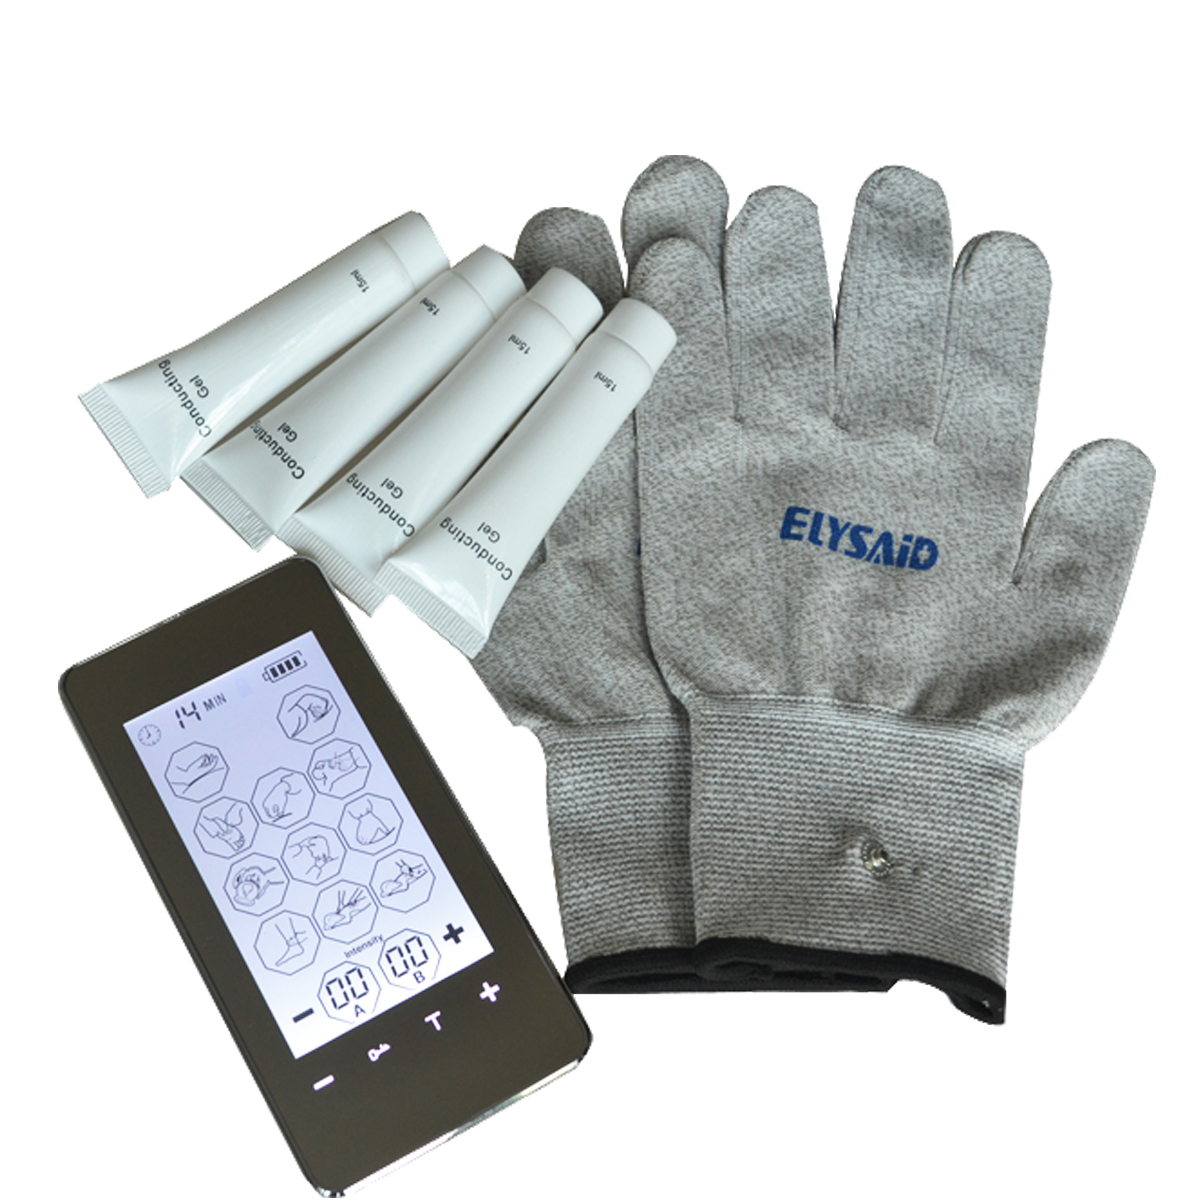 Touch Screen Smart Tens Massager Electronic Puls Machine Devic 12Mode Therapy Unit With Conductive Glove And 4Pcs Conducting GelTouch Screen Smart Tens Massager Electronic Puls Machine Devic 12Mode Therapy Unit With Conductive Glove And 4Pcs Conducting Gel